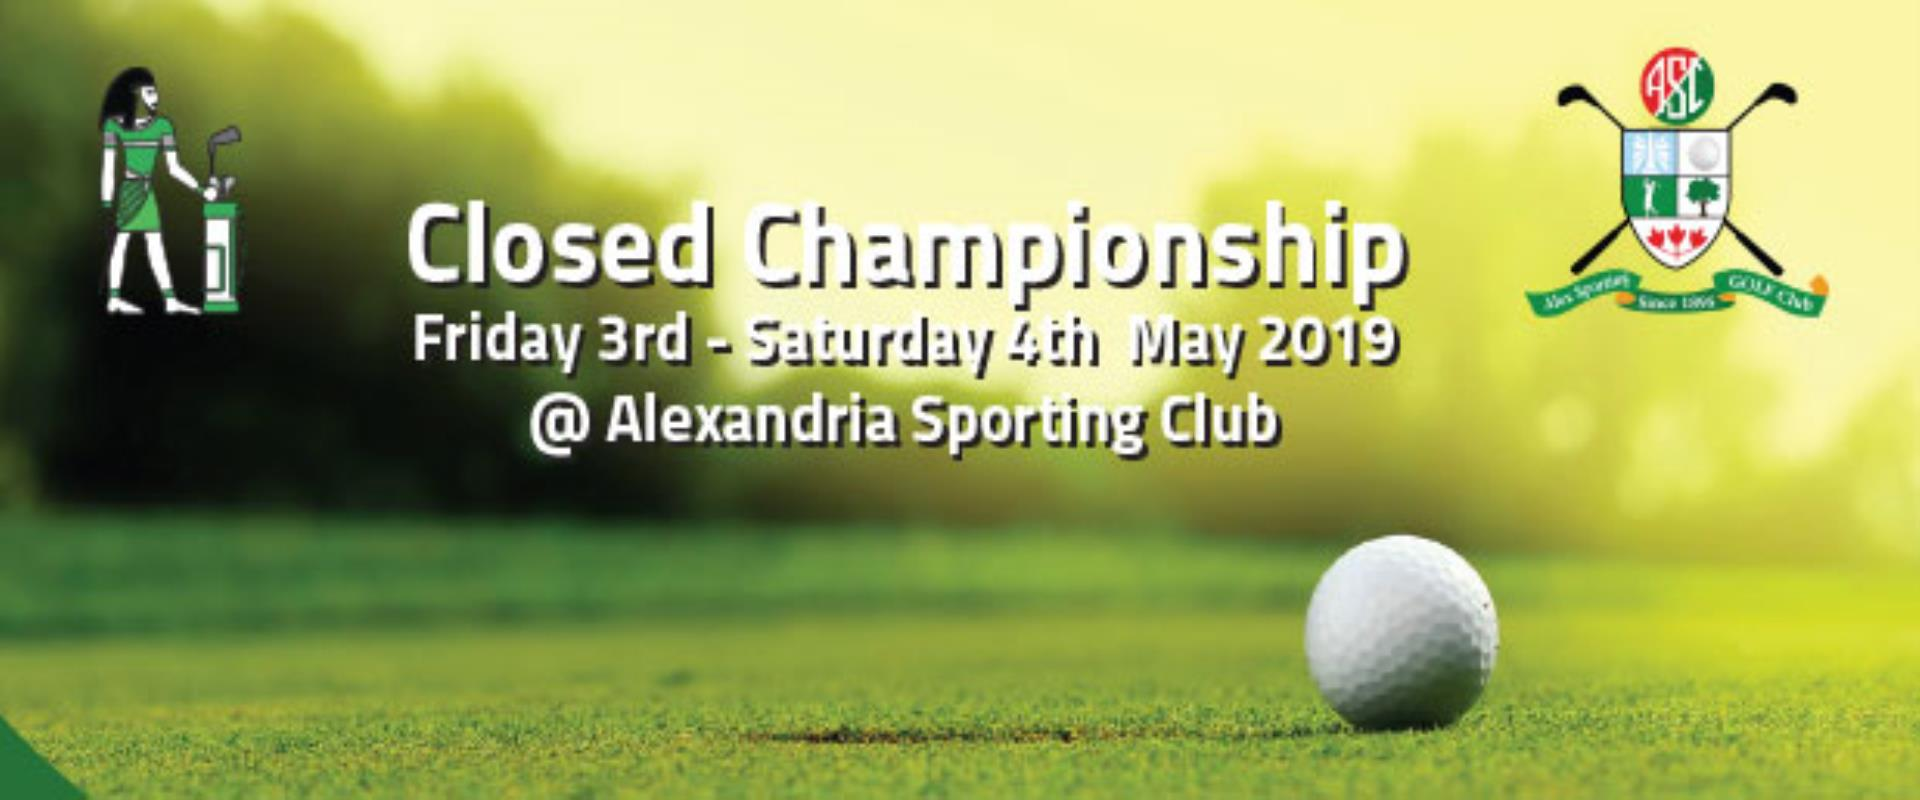 Entries are being accepted for The Closed Championship @ Alexandria